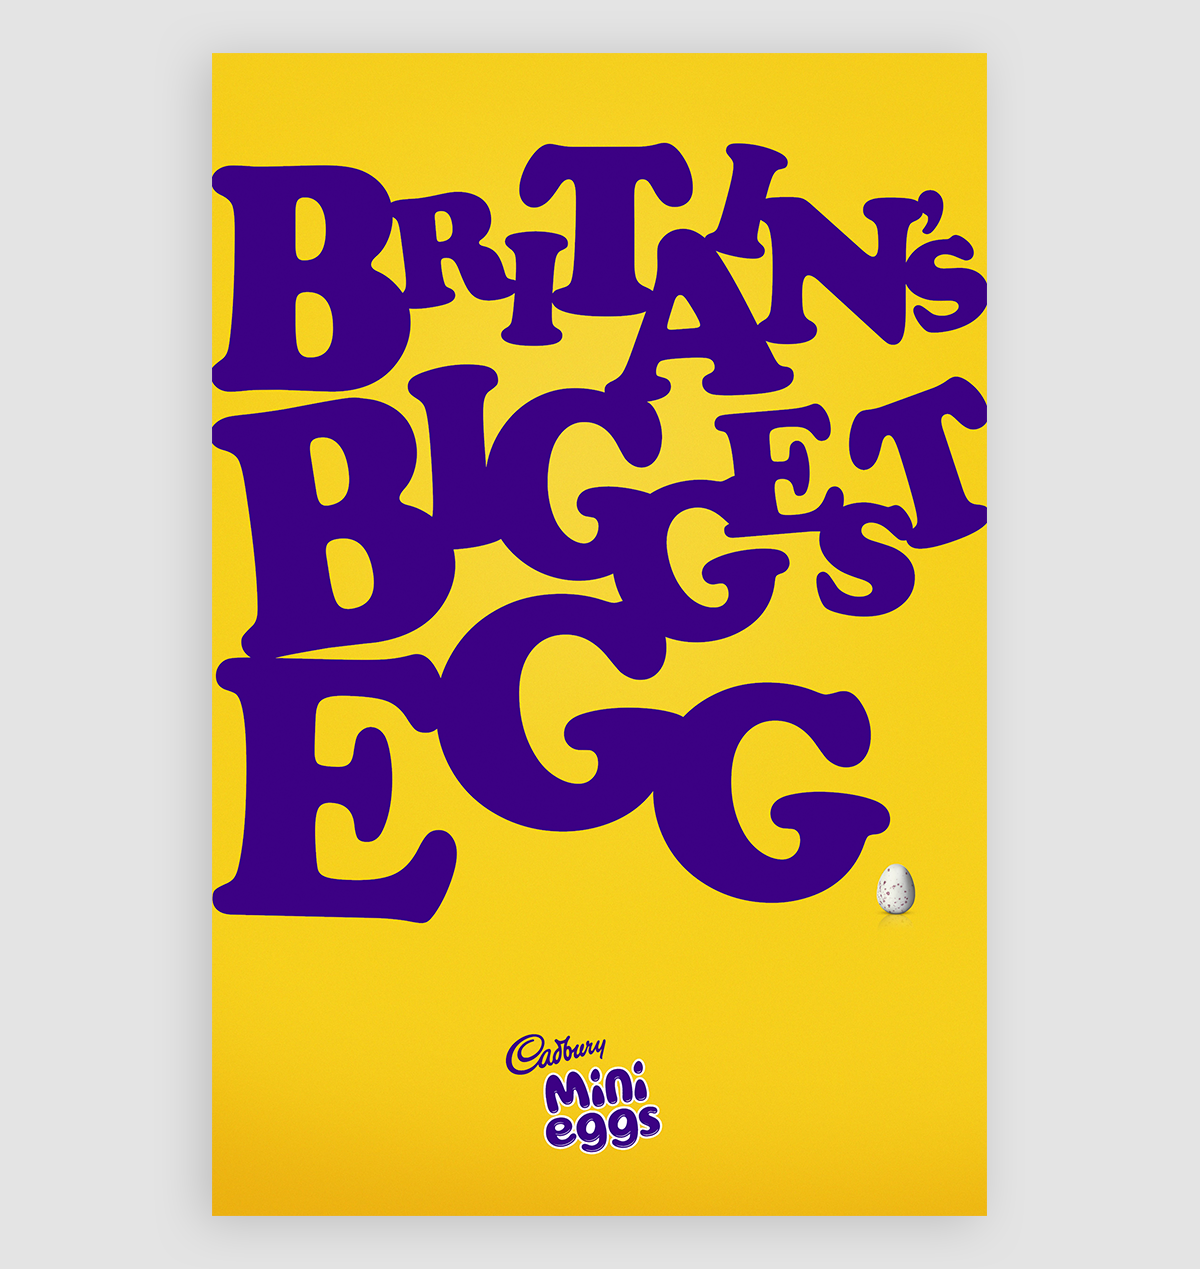 A yellow and purple Cadbury egg with huge font to grab attention.